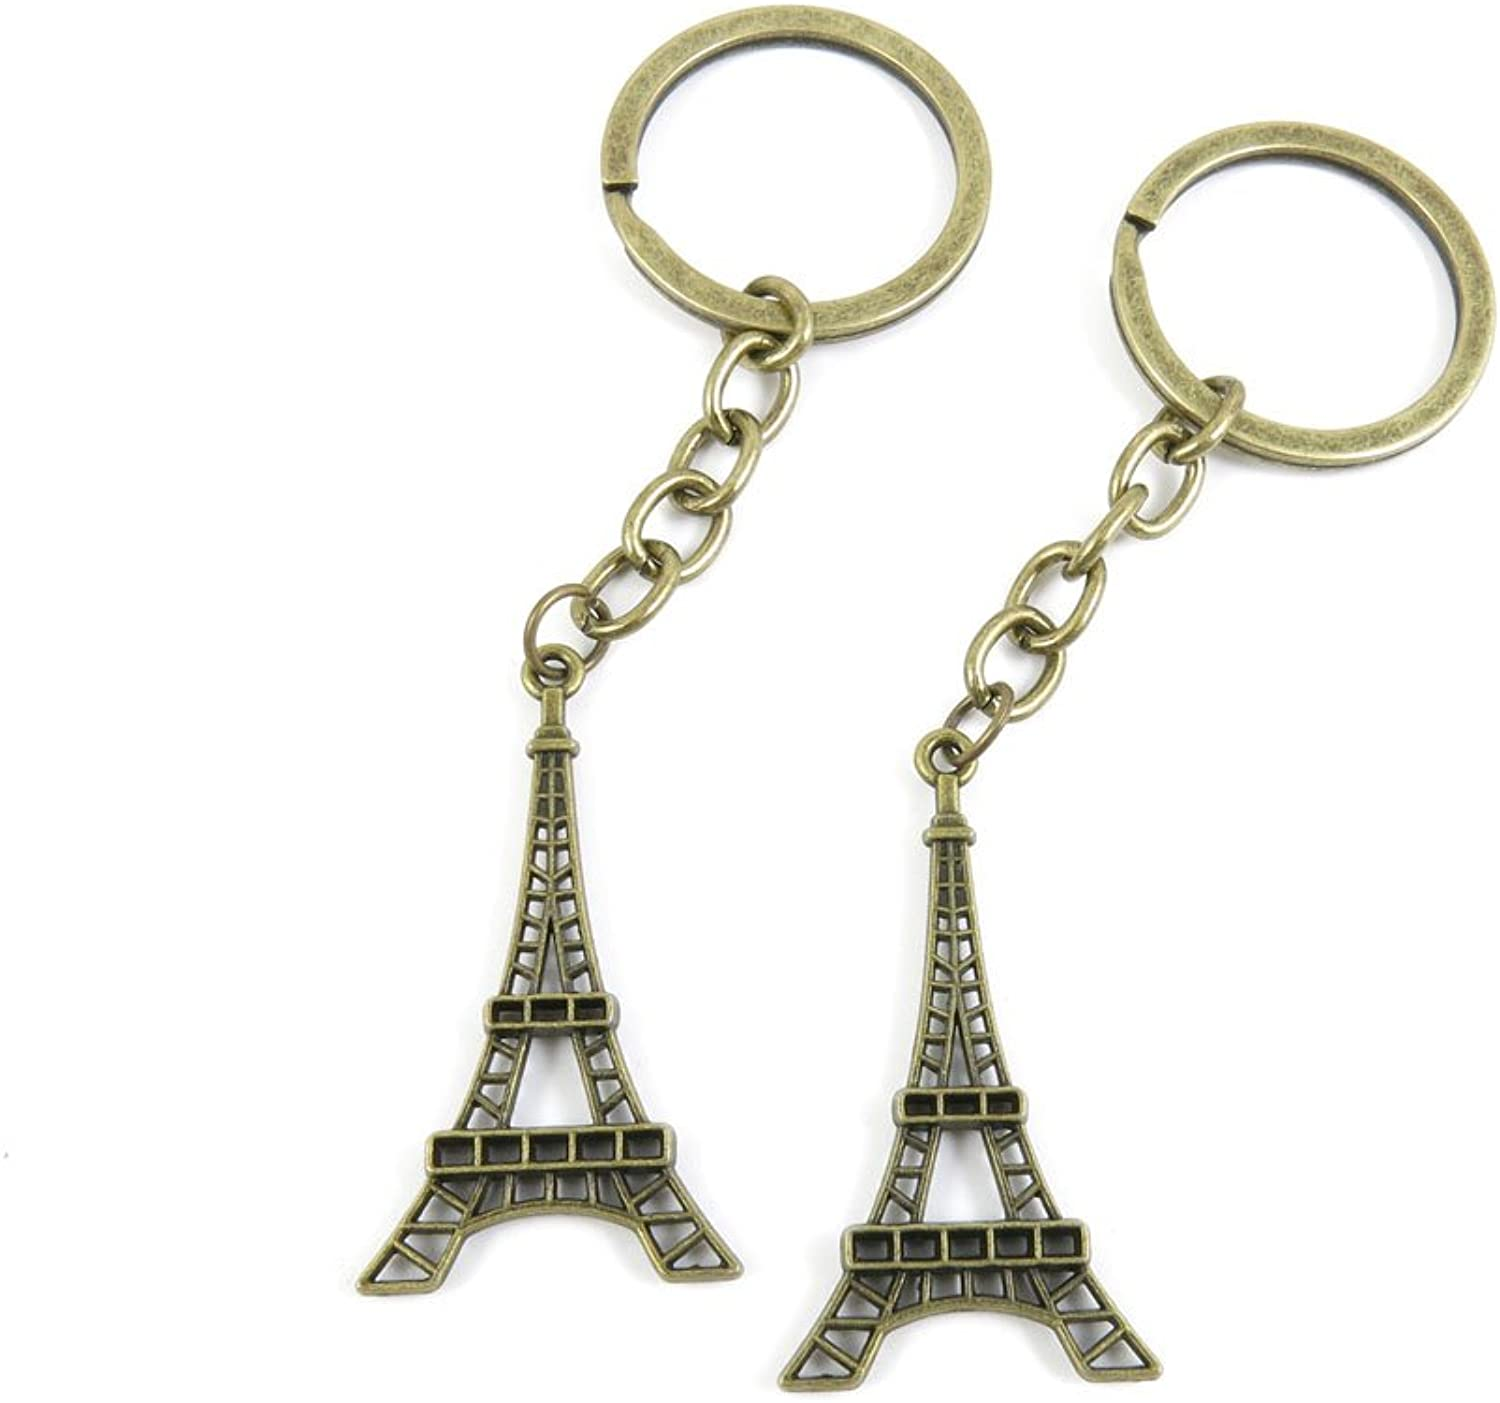 100 PCS Keyrings Keychains Key Ring Chains Tags Jewelry Findings Clasps Buckles Supplies K3BE1 Paris Eiffel Tower